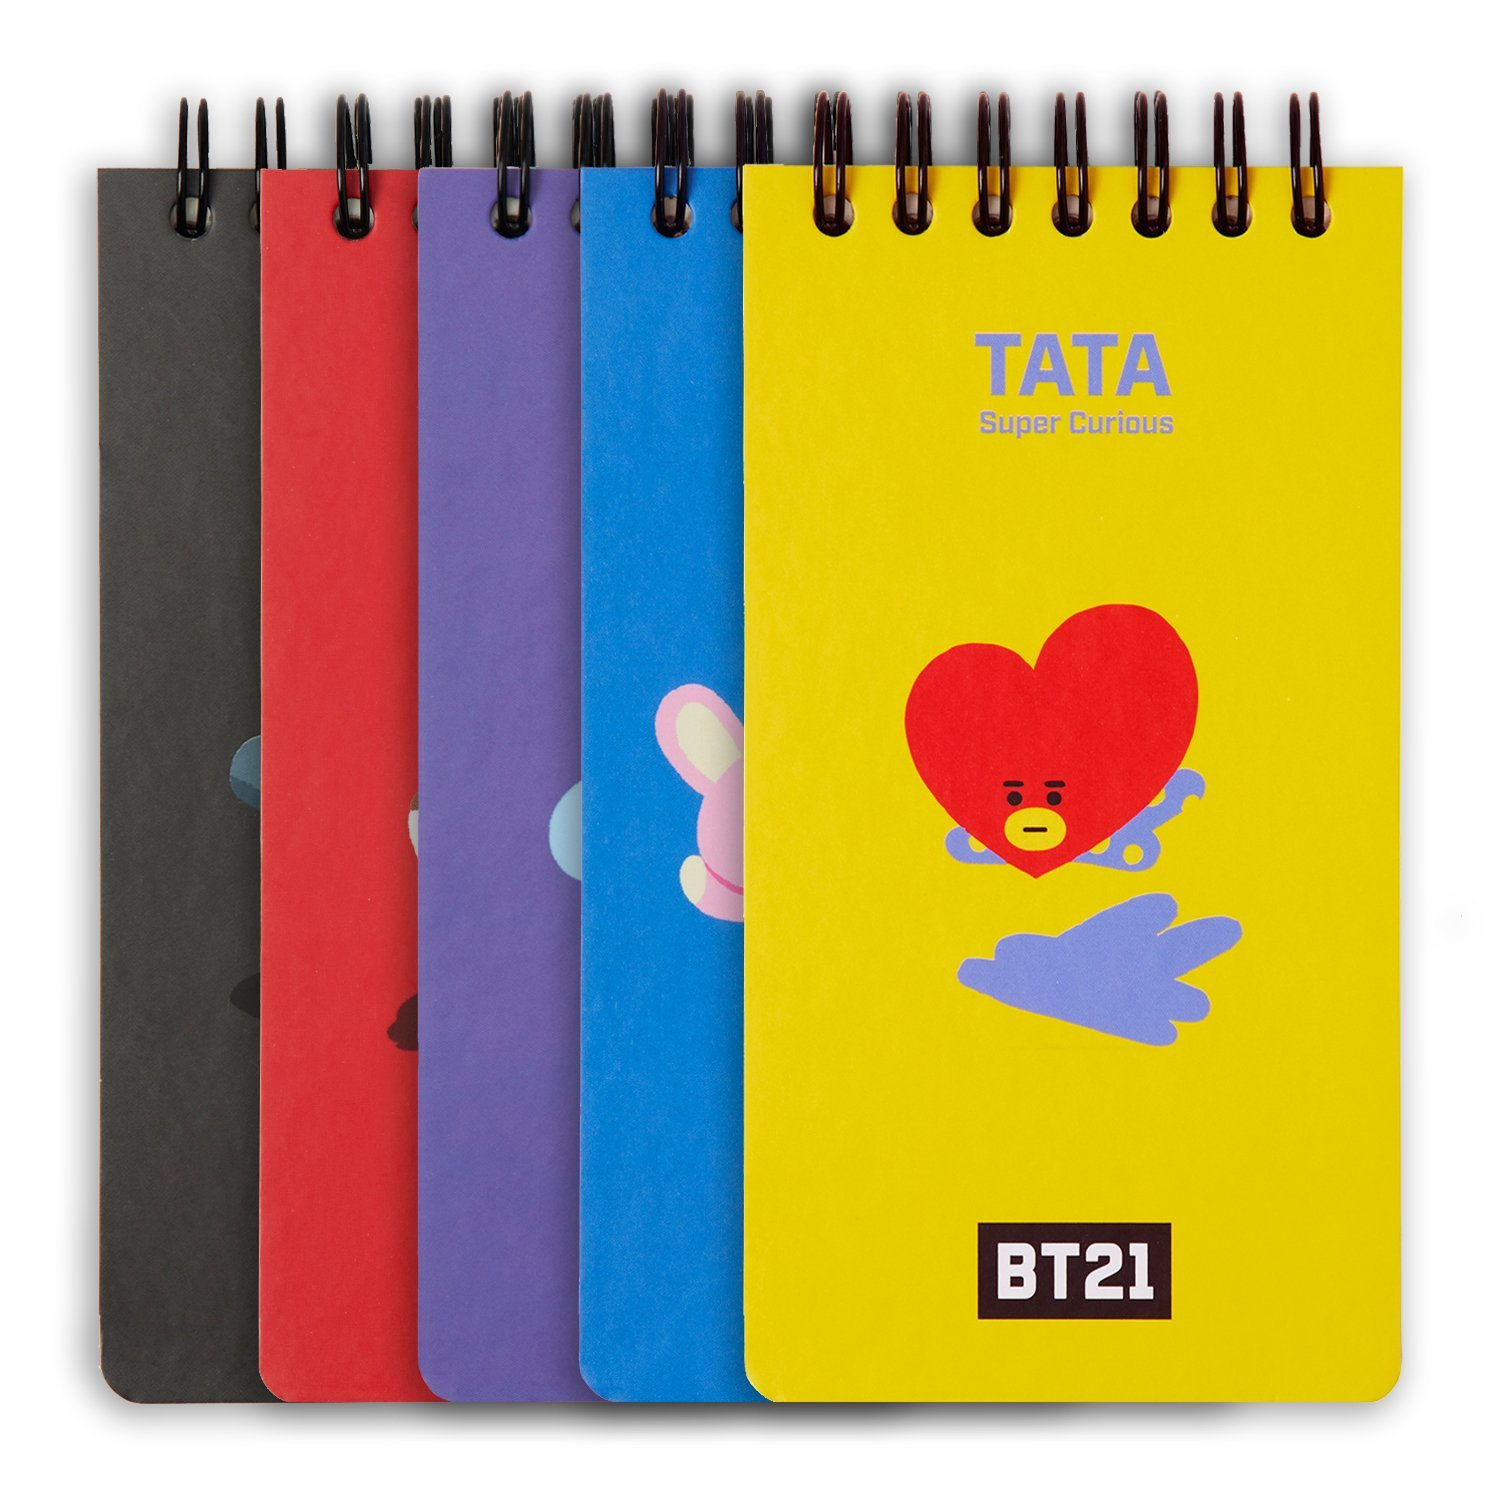 BT21 Official Merchandise by Line Friends - 5 Pack Character Small Spiral Notebook with 80 Sheets Each